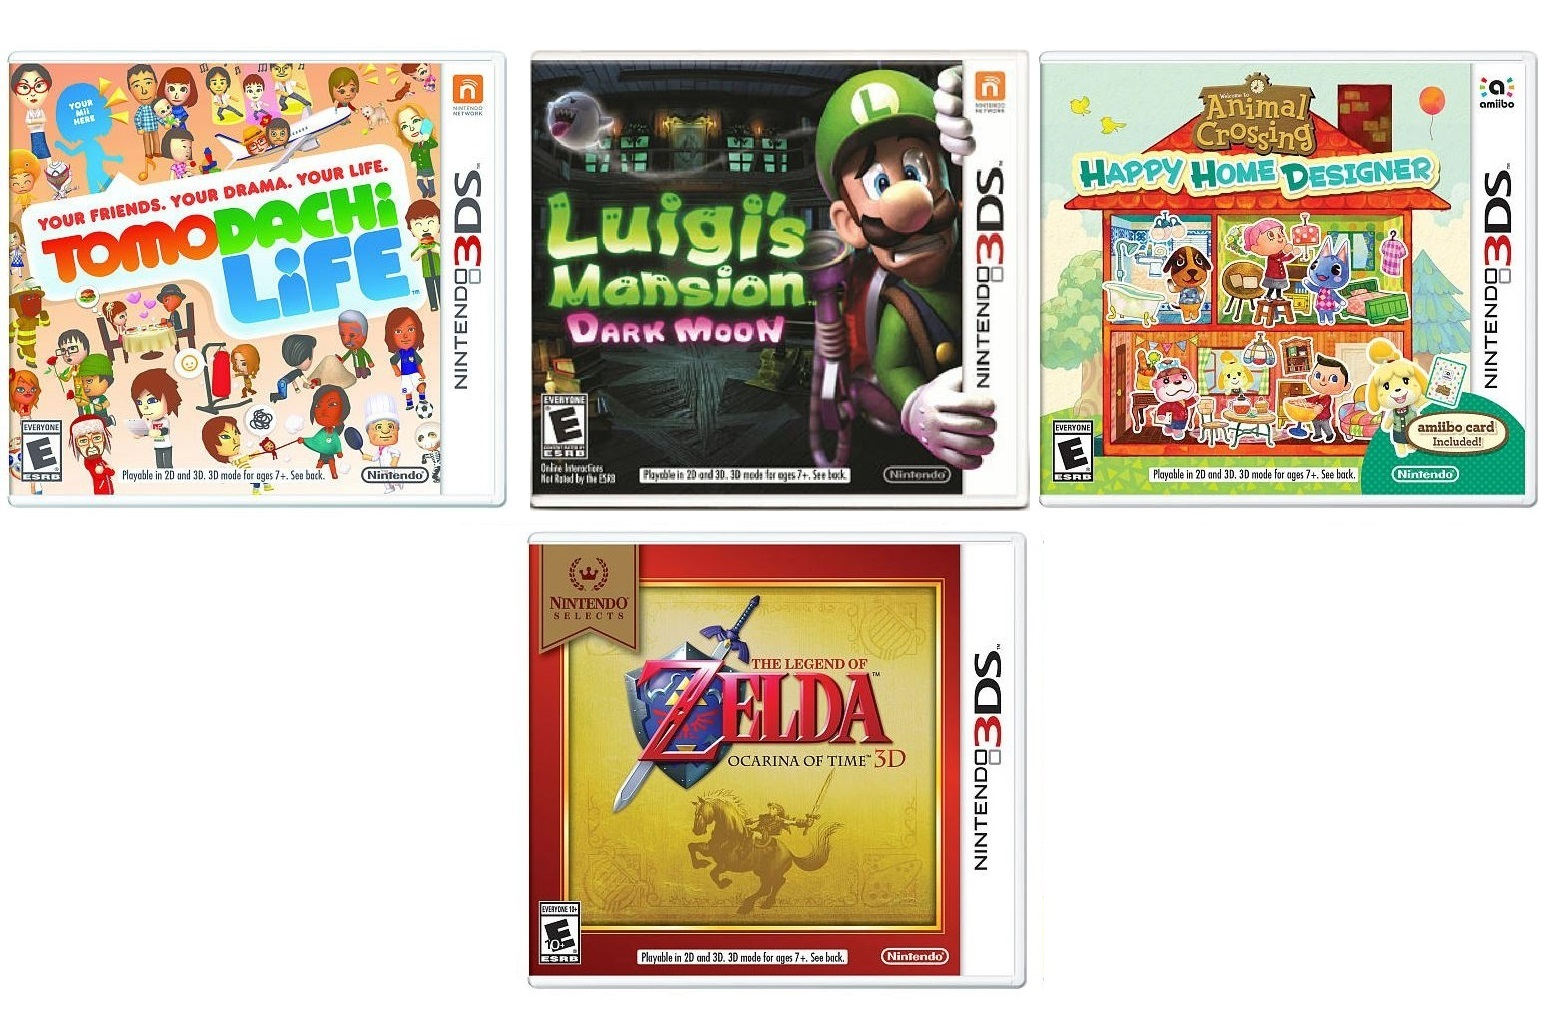 Nintendo 3DS Games are 2 for $30 at Toys R Us